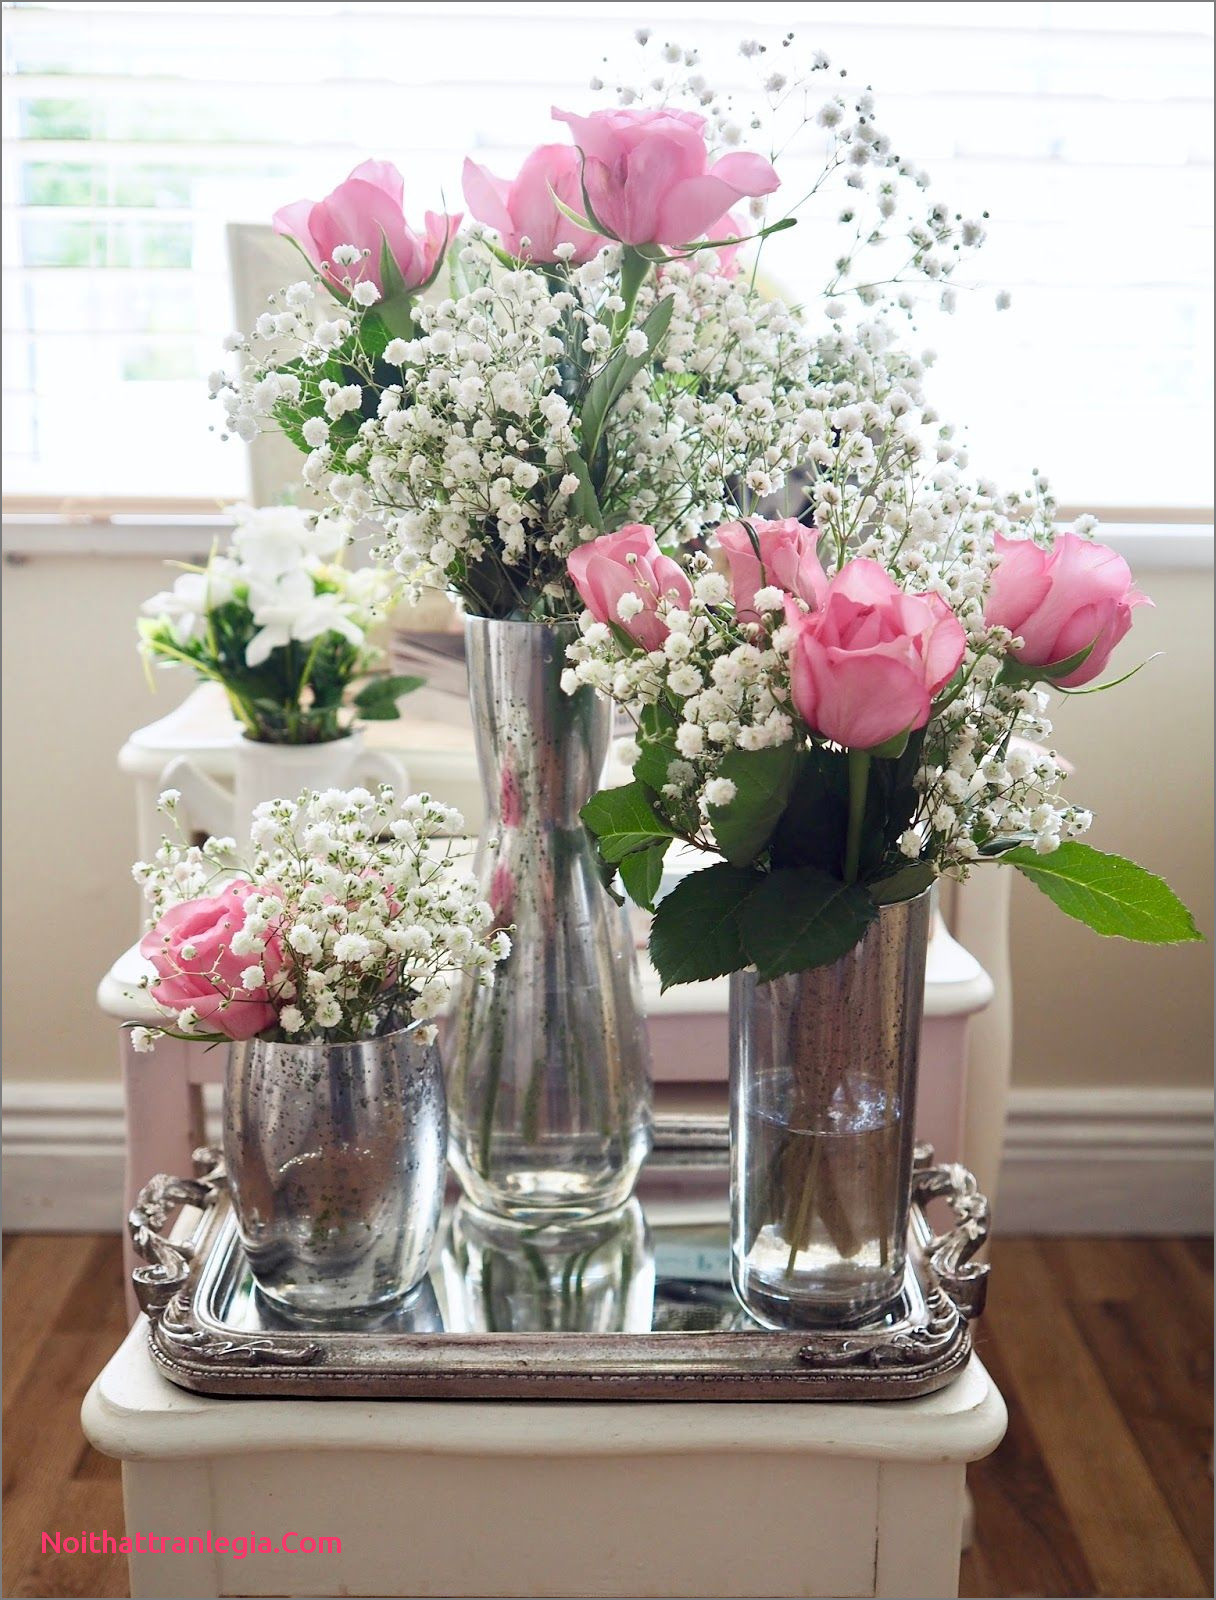 15 attractive Vintage Milk Glass Vase 2021 free download vintage milk glass vase of 20 how to make mercury glass vases noithattranlegia vases design inside using the rust oleum mirror effect spray paint i am taking some cheap glasses and turning